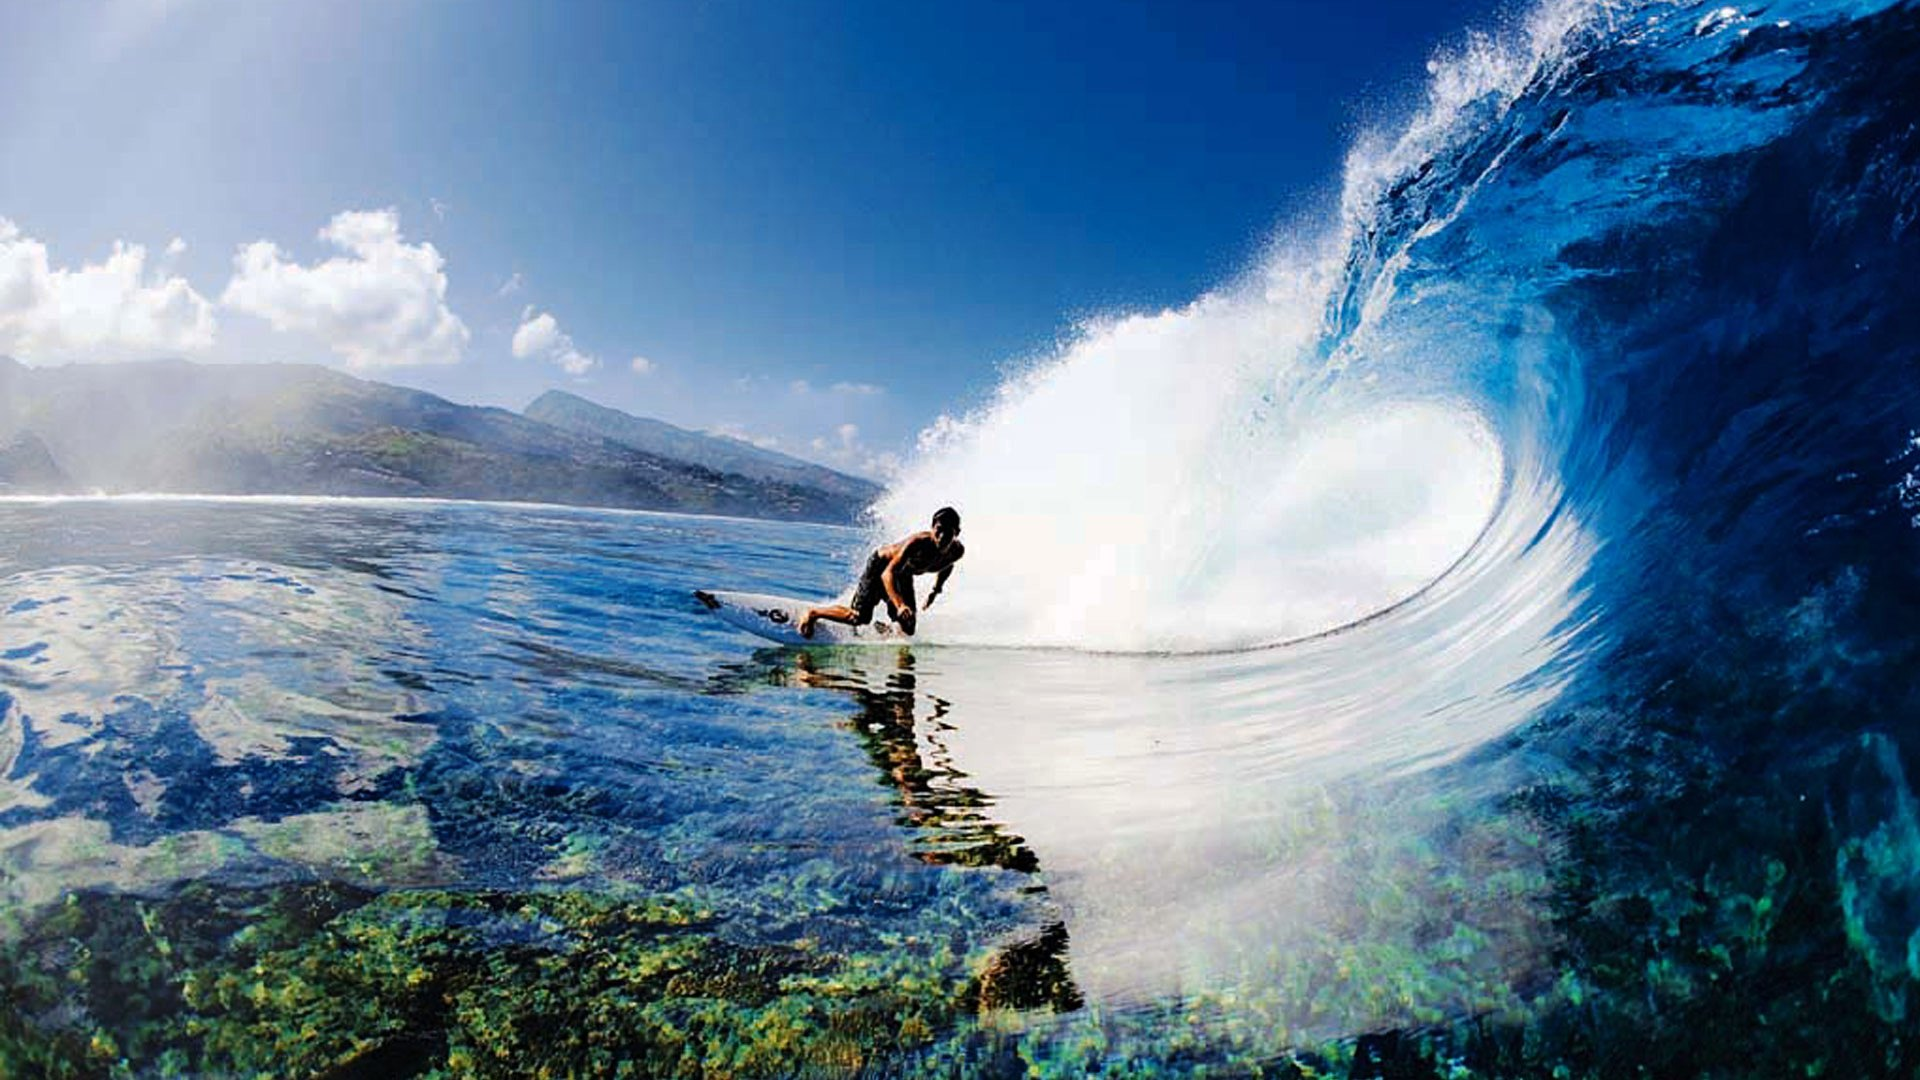 surfing Computer Wallpapers Desktop Backgrounds 1920x1080 ID 1920x1080